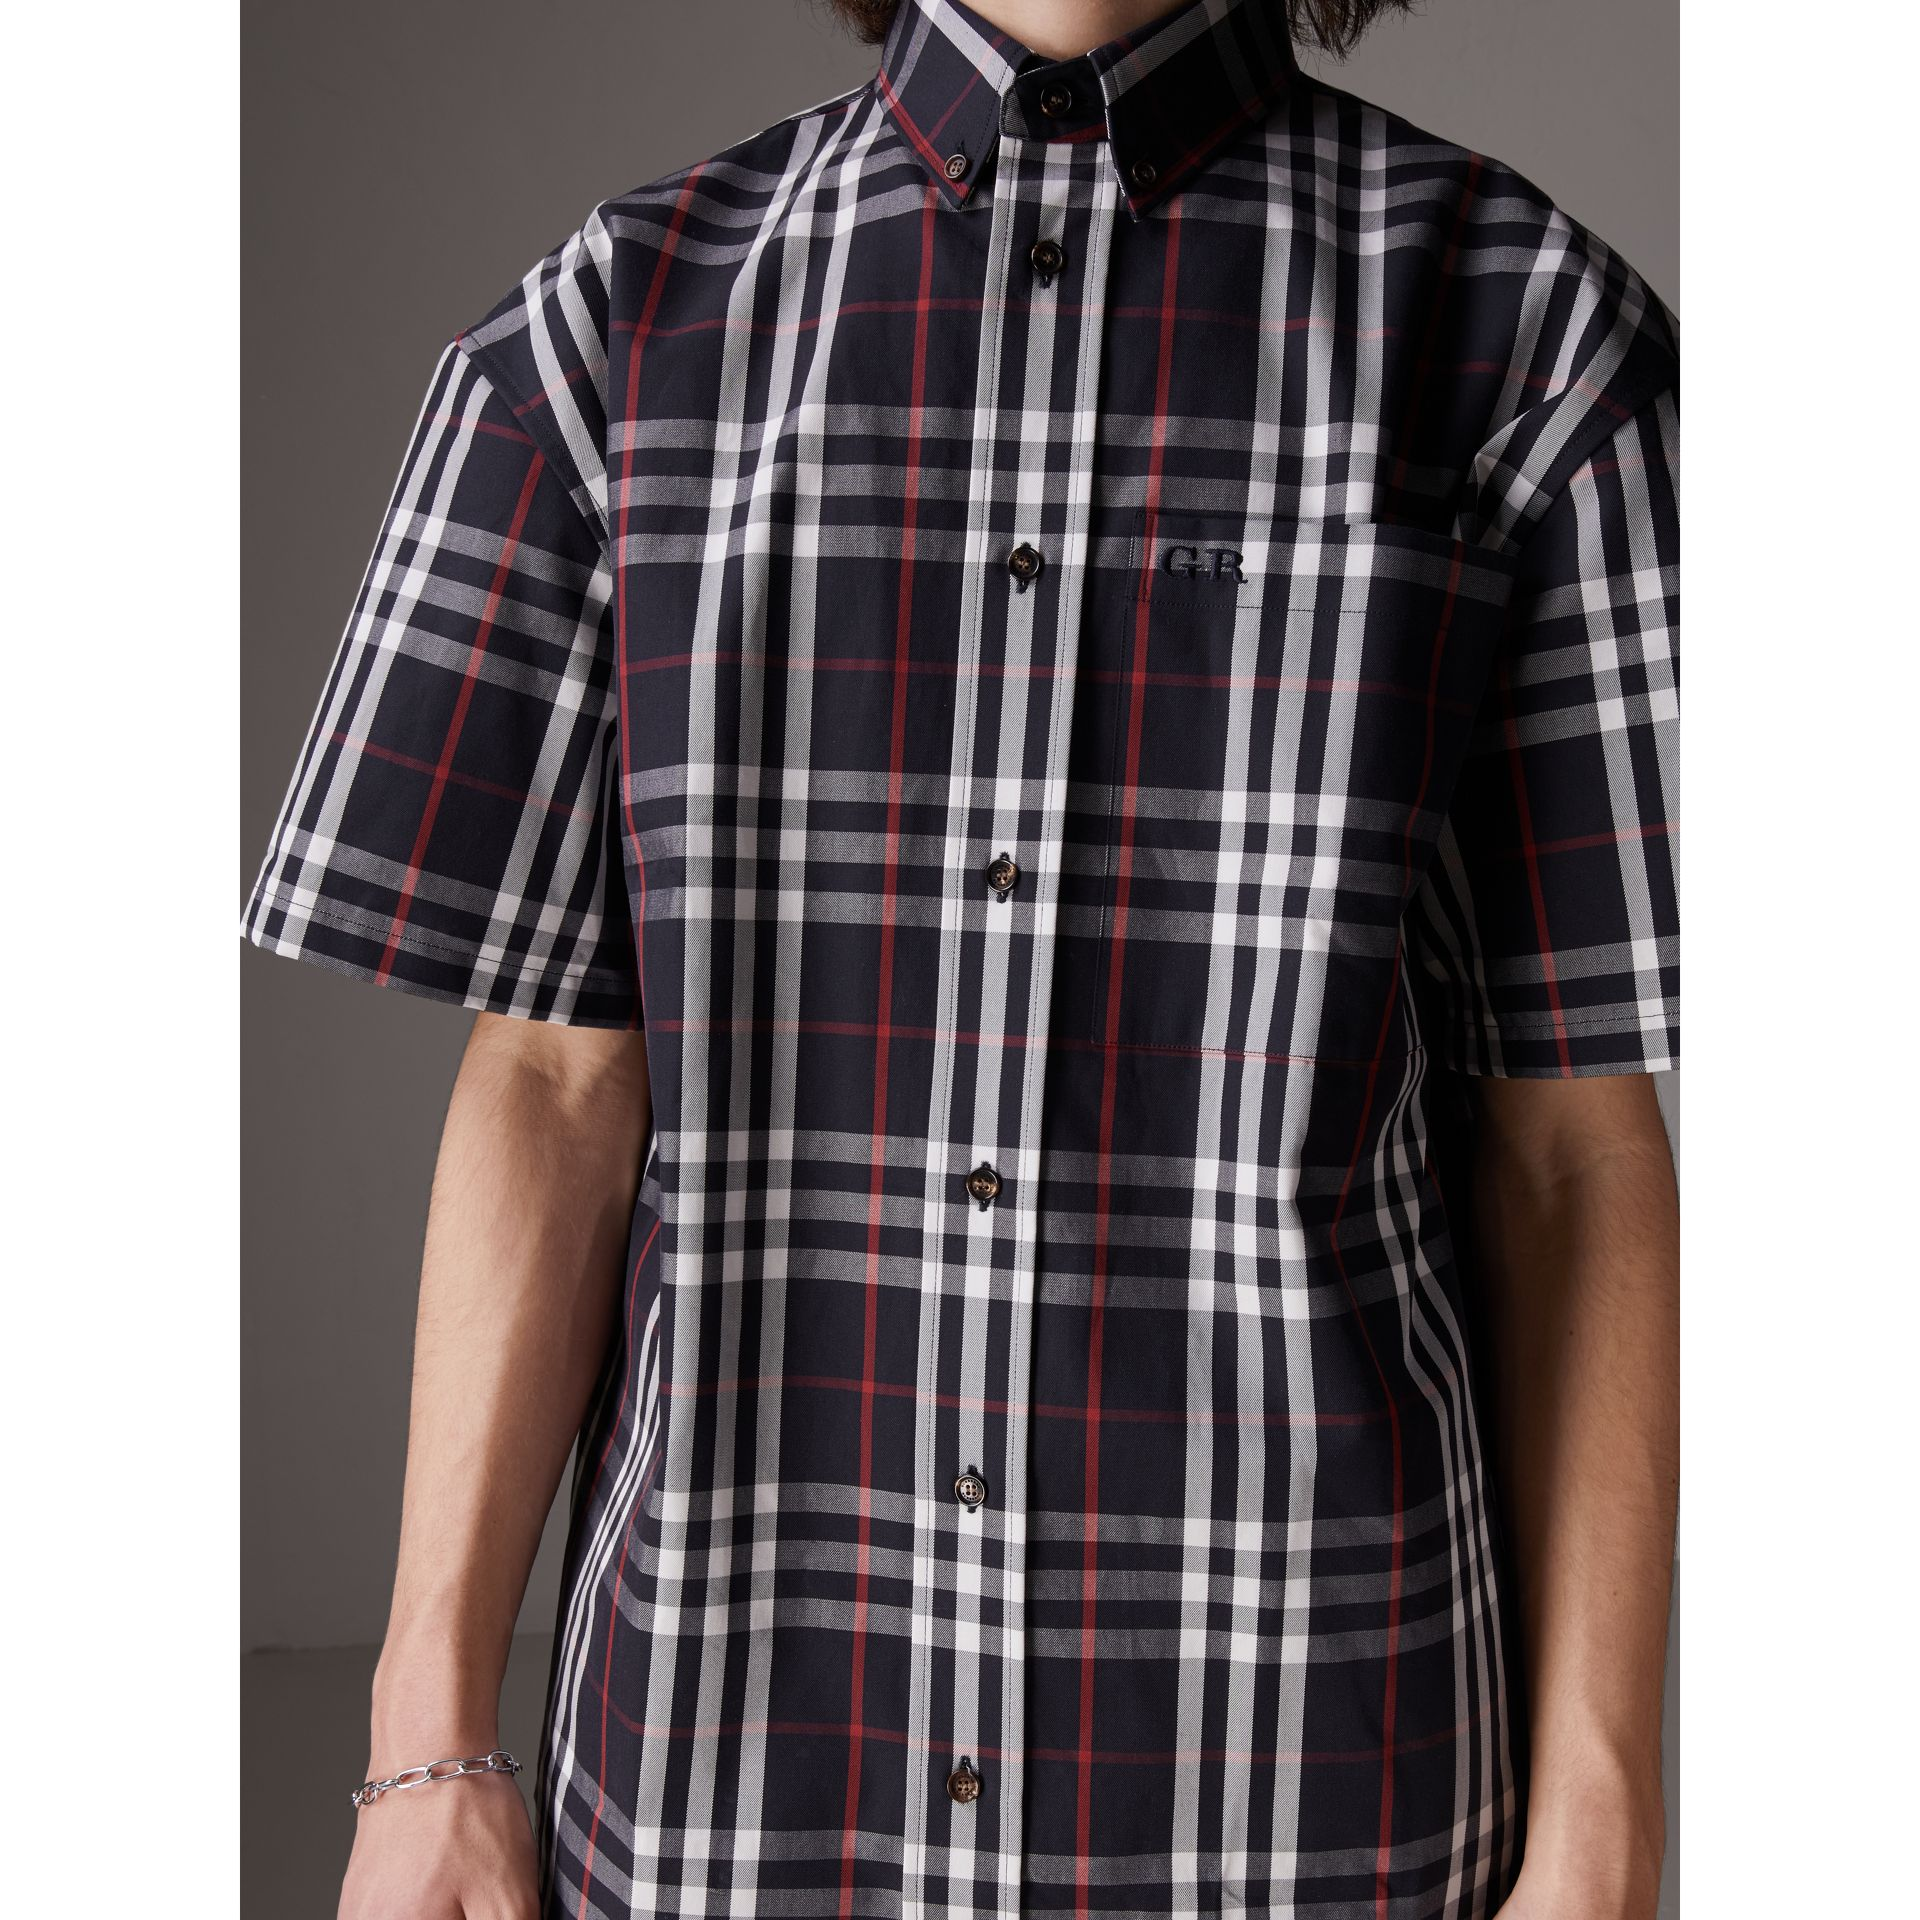 Gosha x Burberry Short-sleeve Check Shirt in Navy | Burberry United Kingdom - gallery image 1